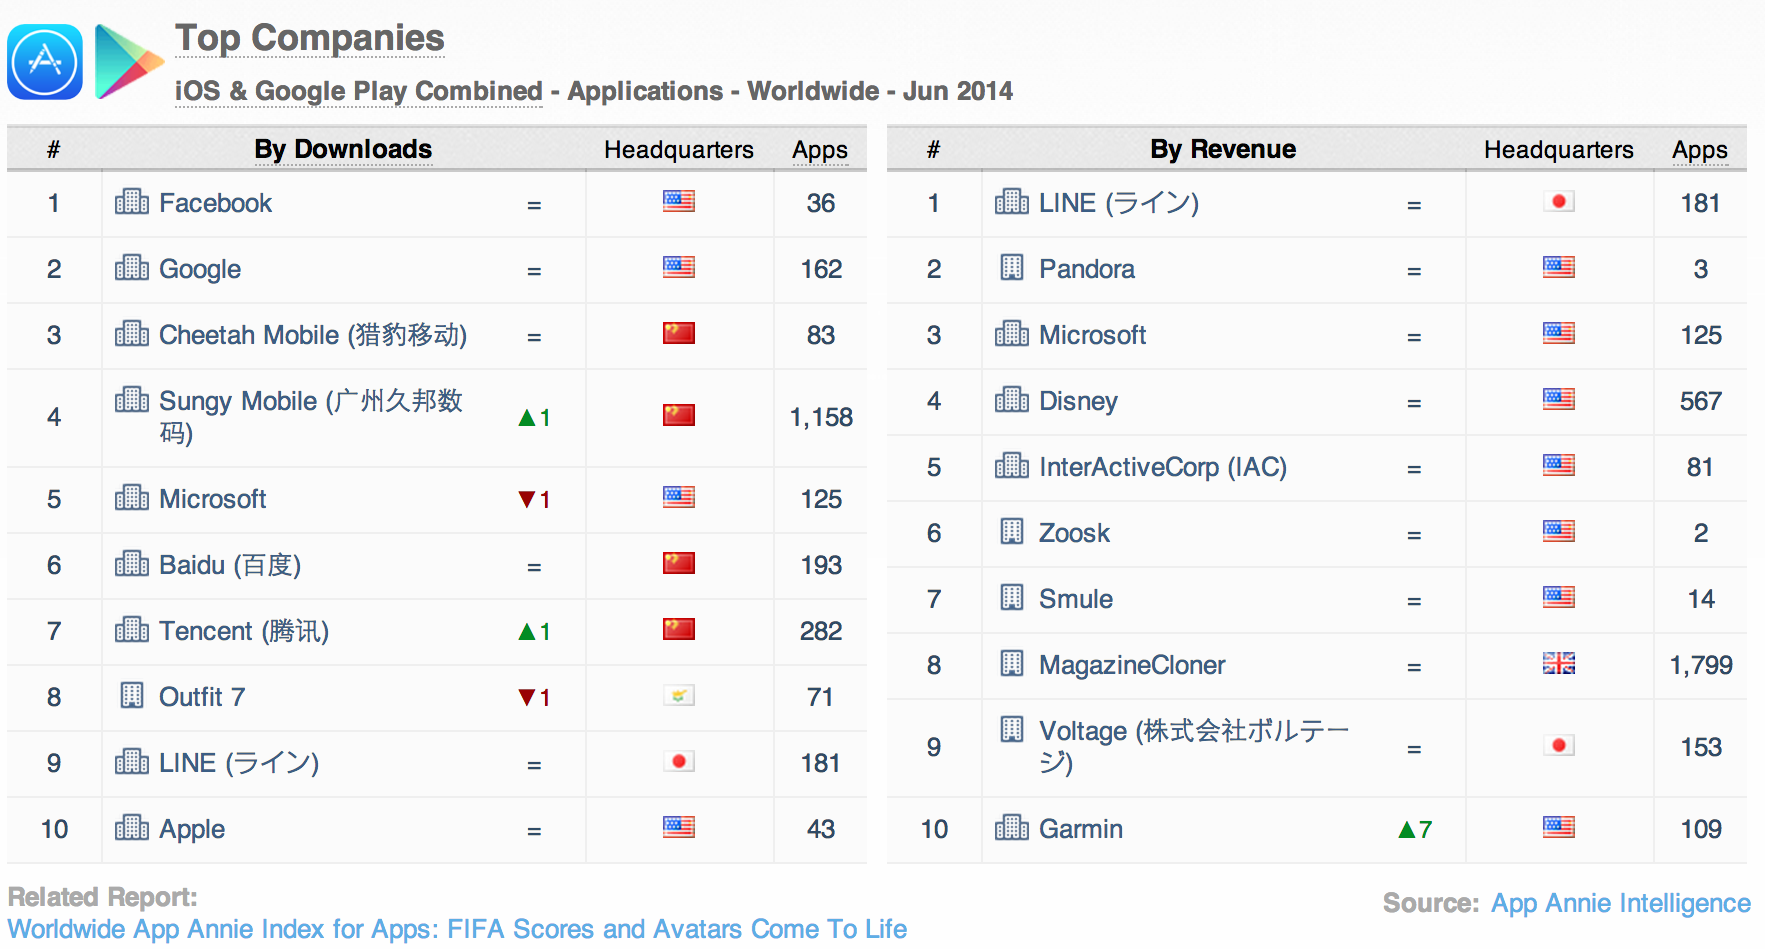 Top Companies iOS and Google Play combined apps worldwide June 2014